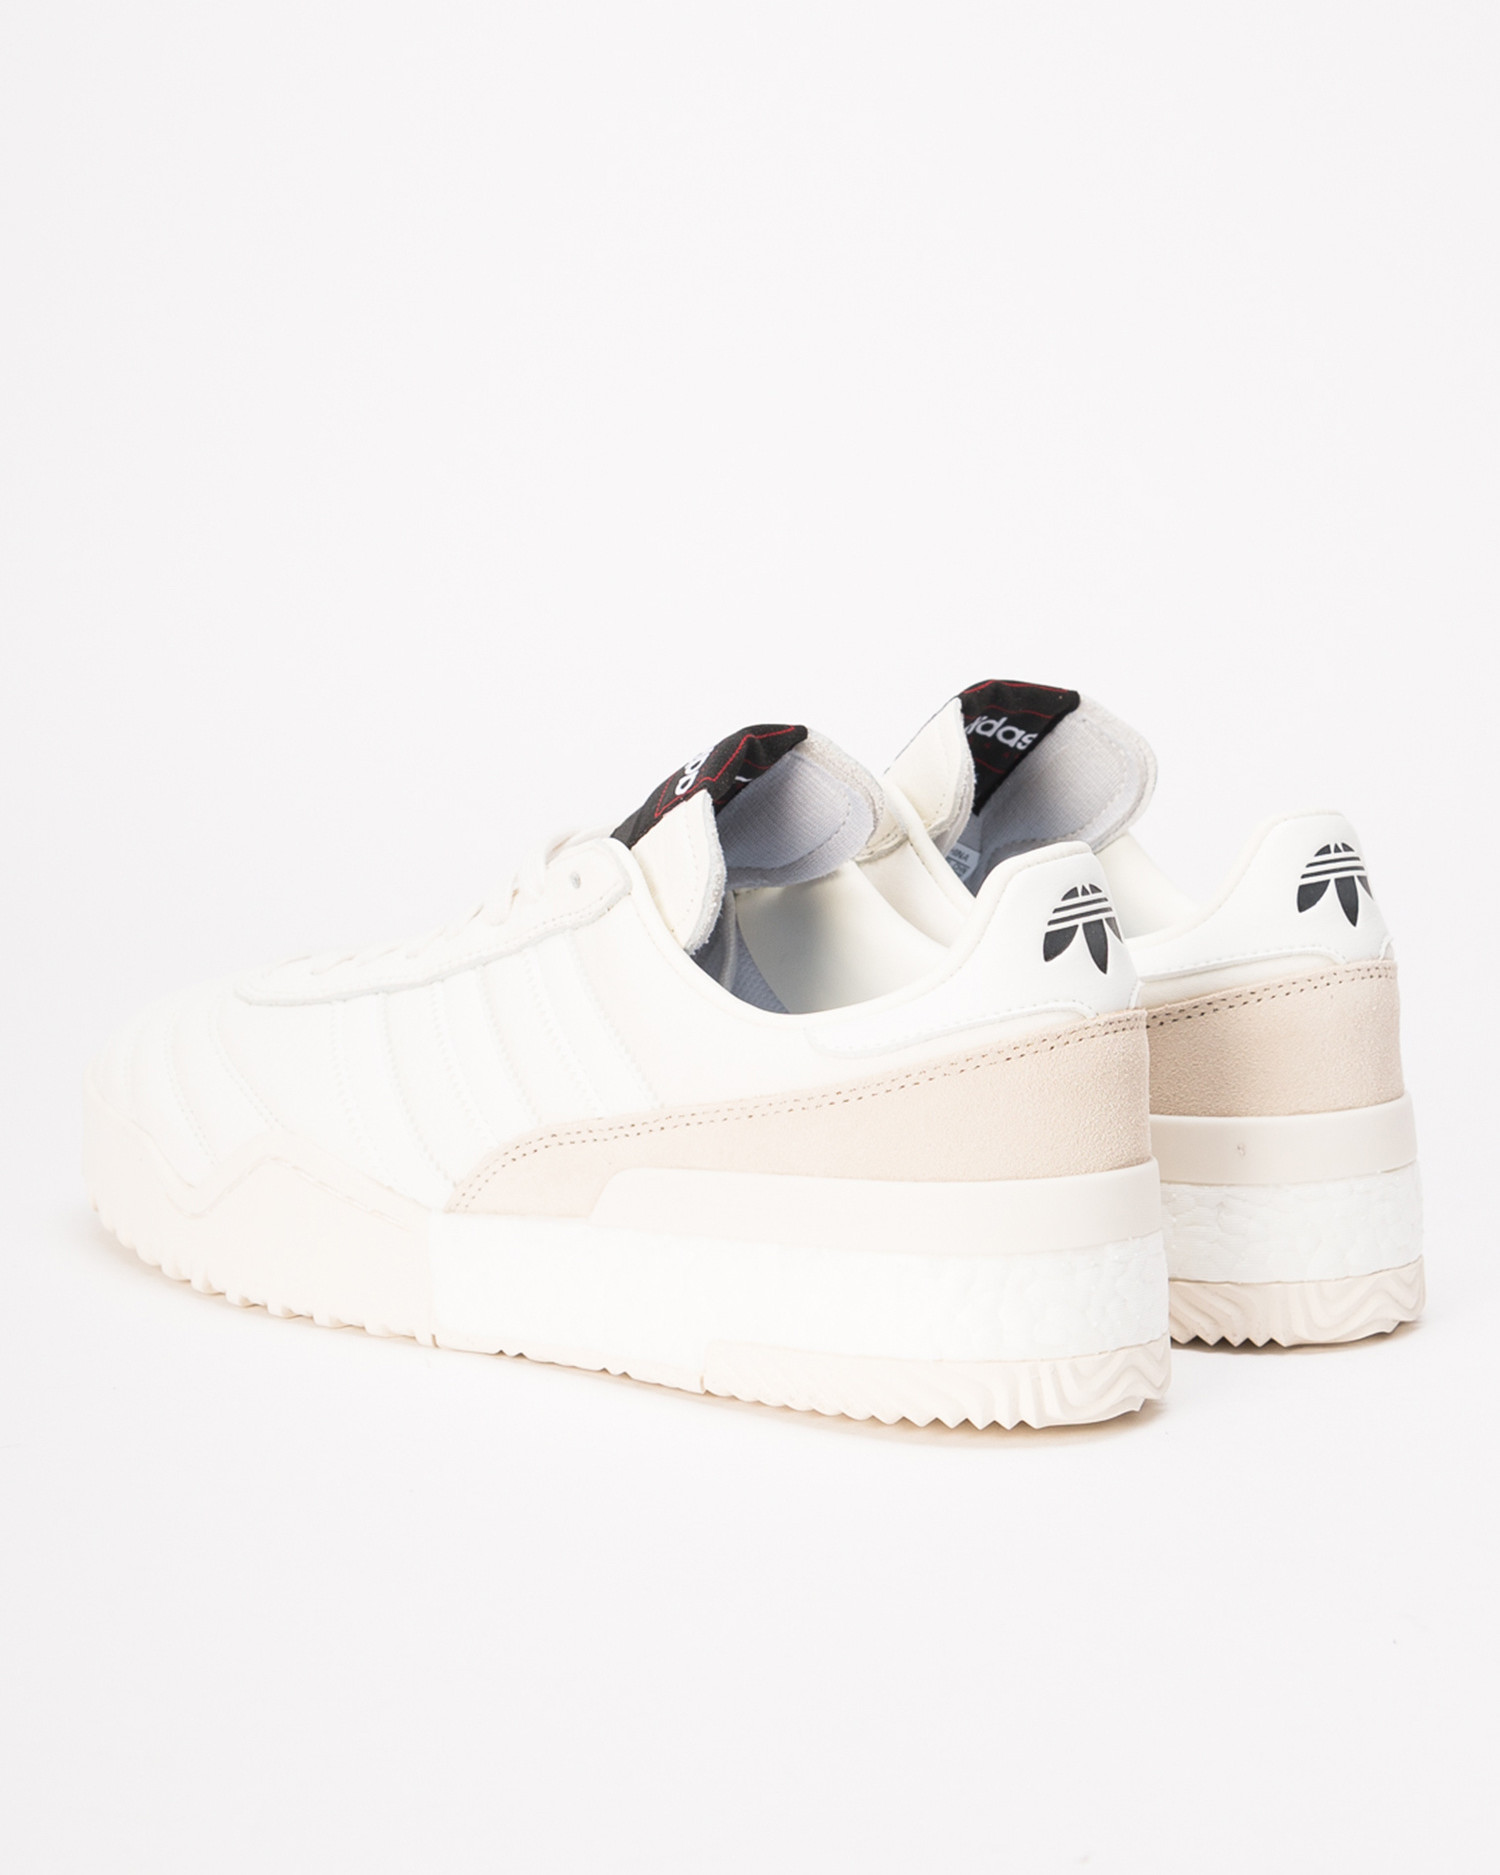 adidas x Alexander Wang Bball Soccer CORE WHITE/CORE WHITE/CLEAR BROWN